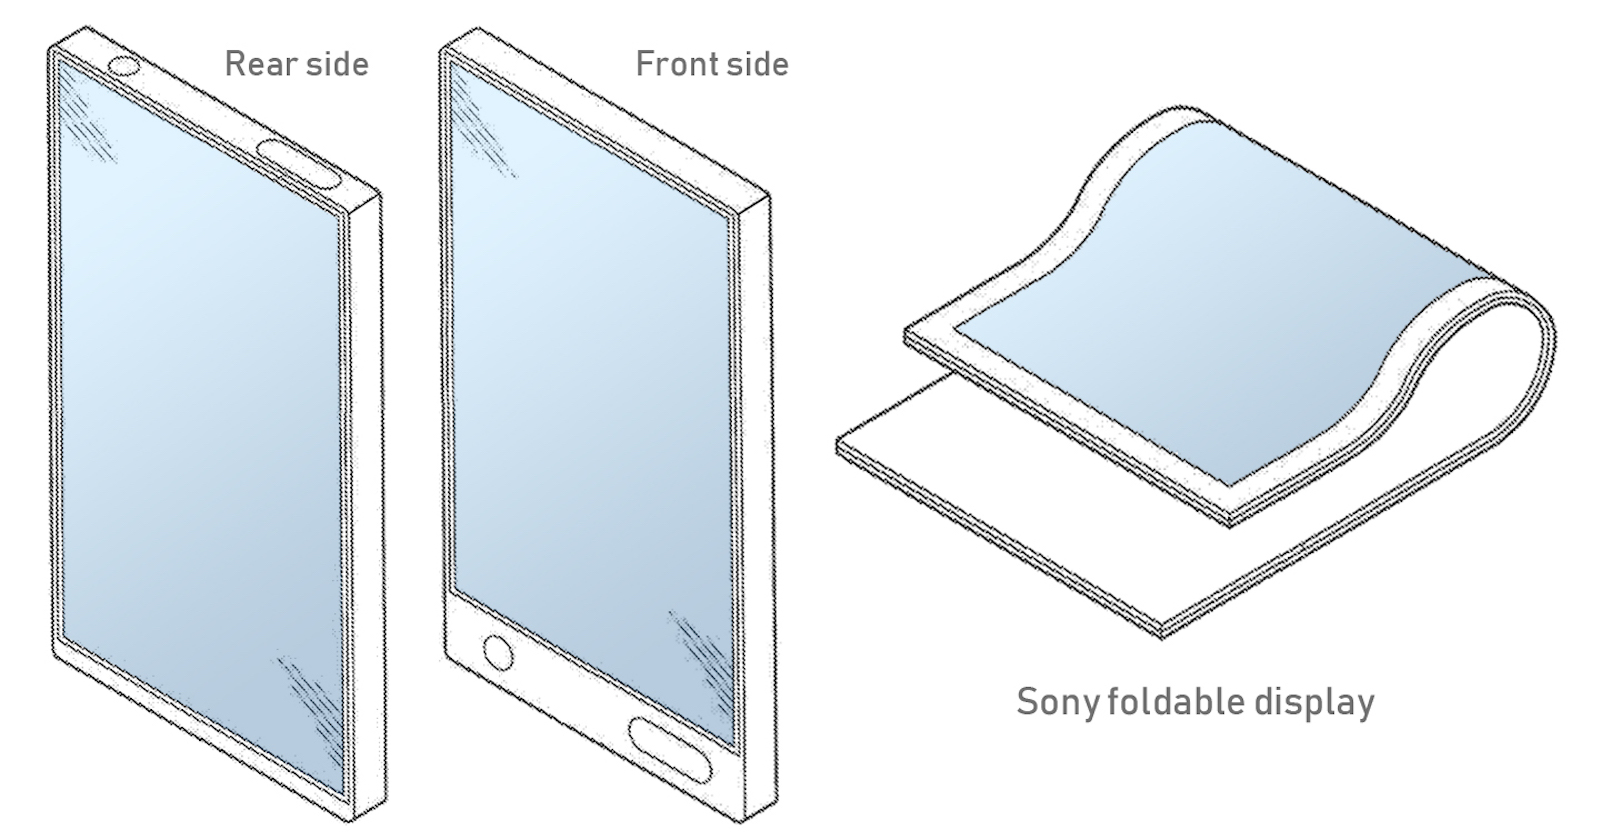 Sony Foldable Smartphone Patent